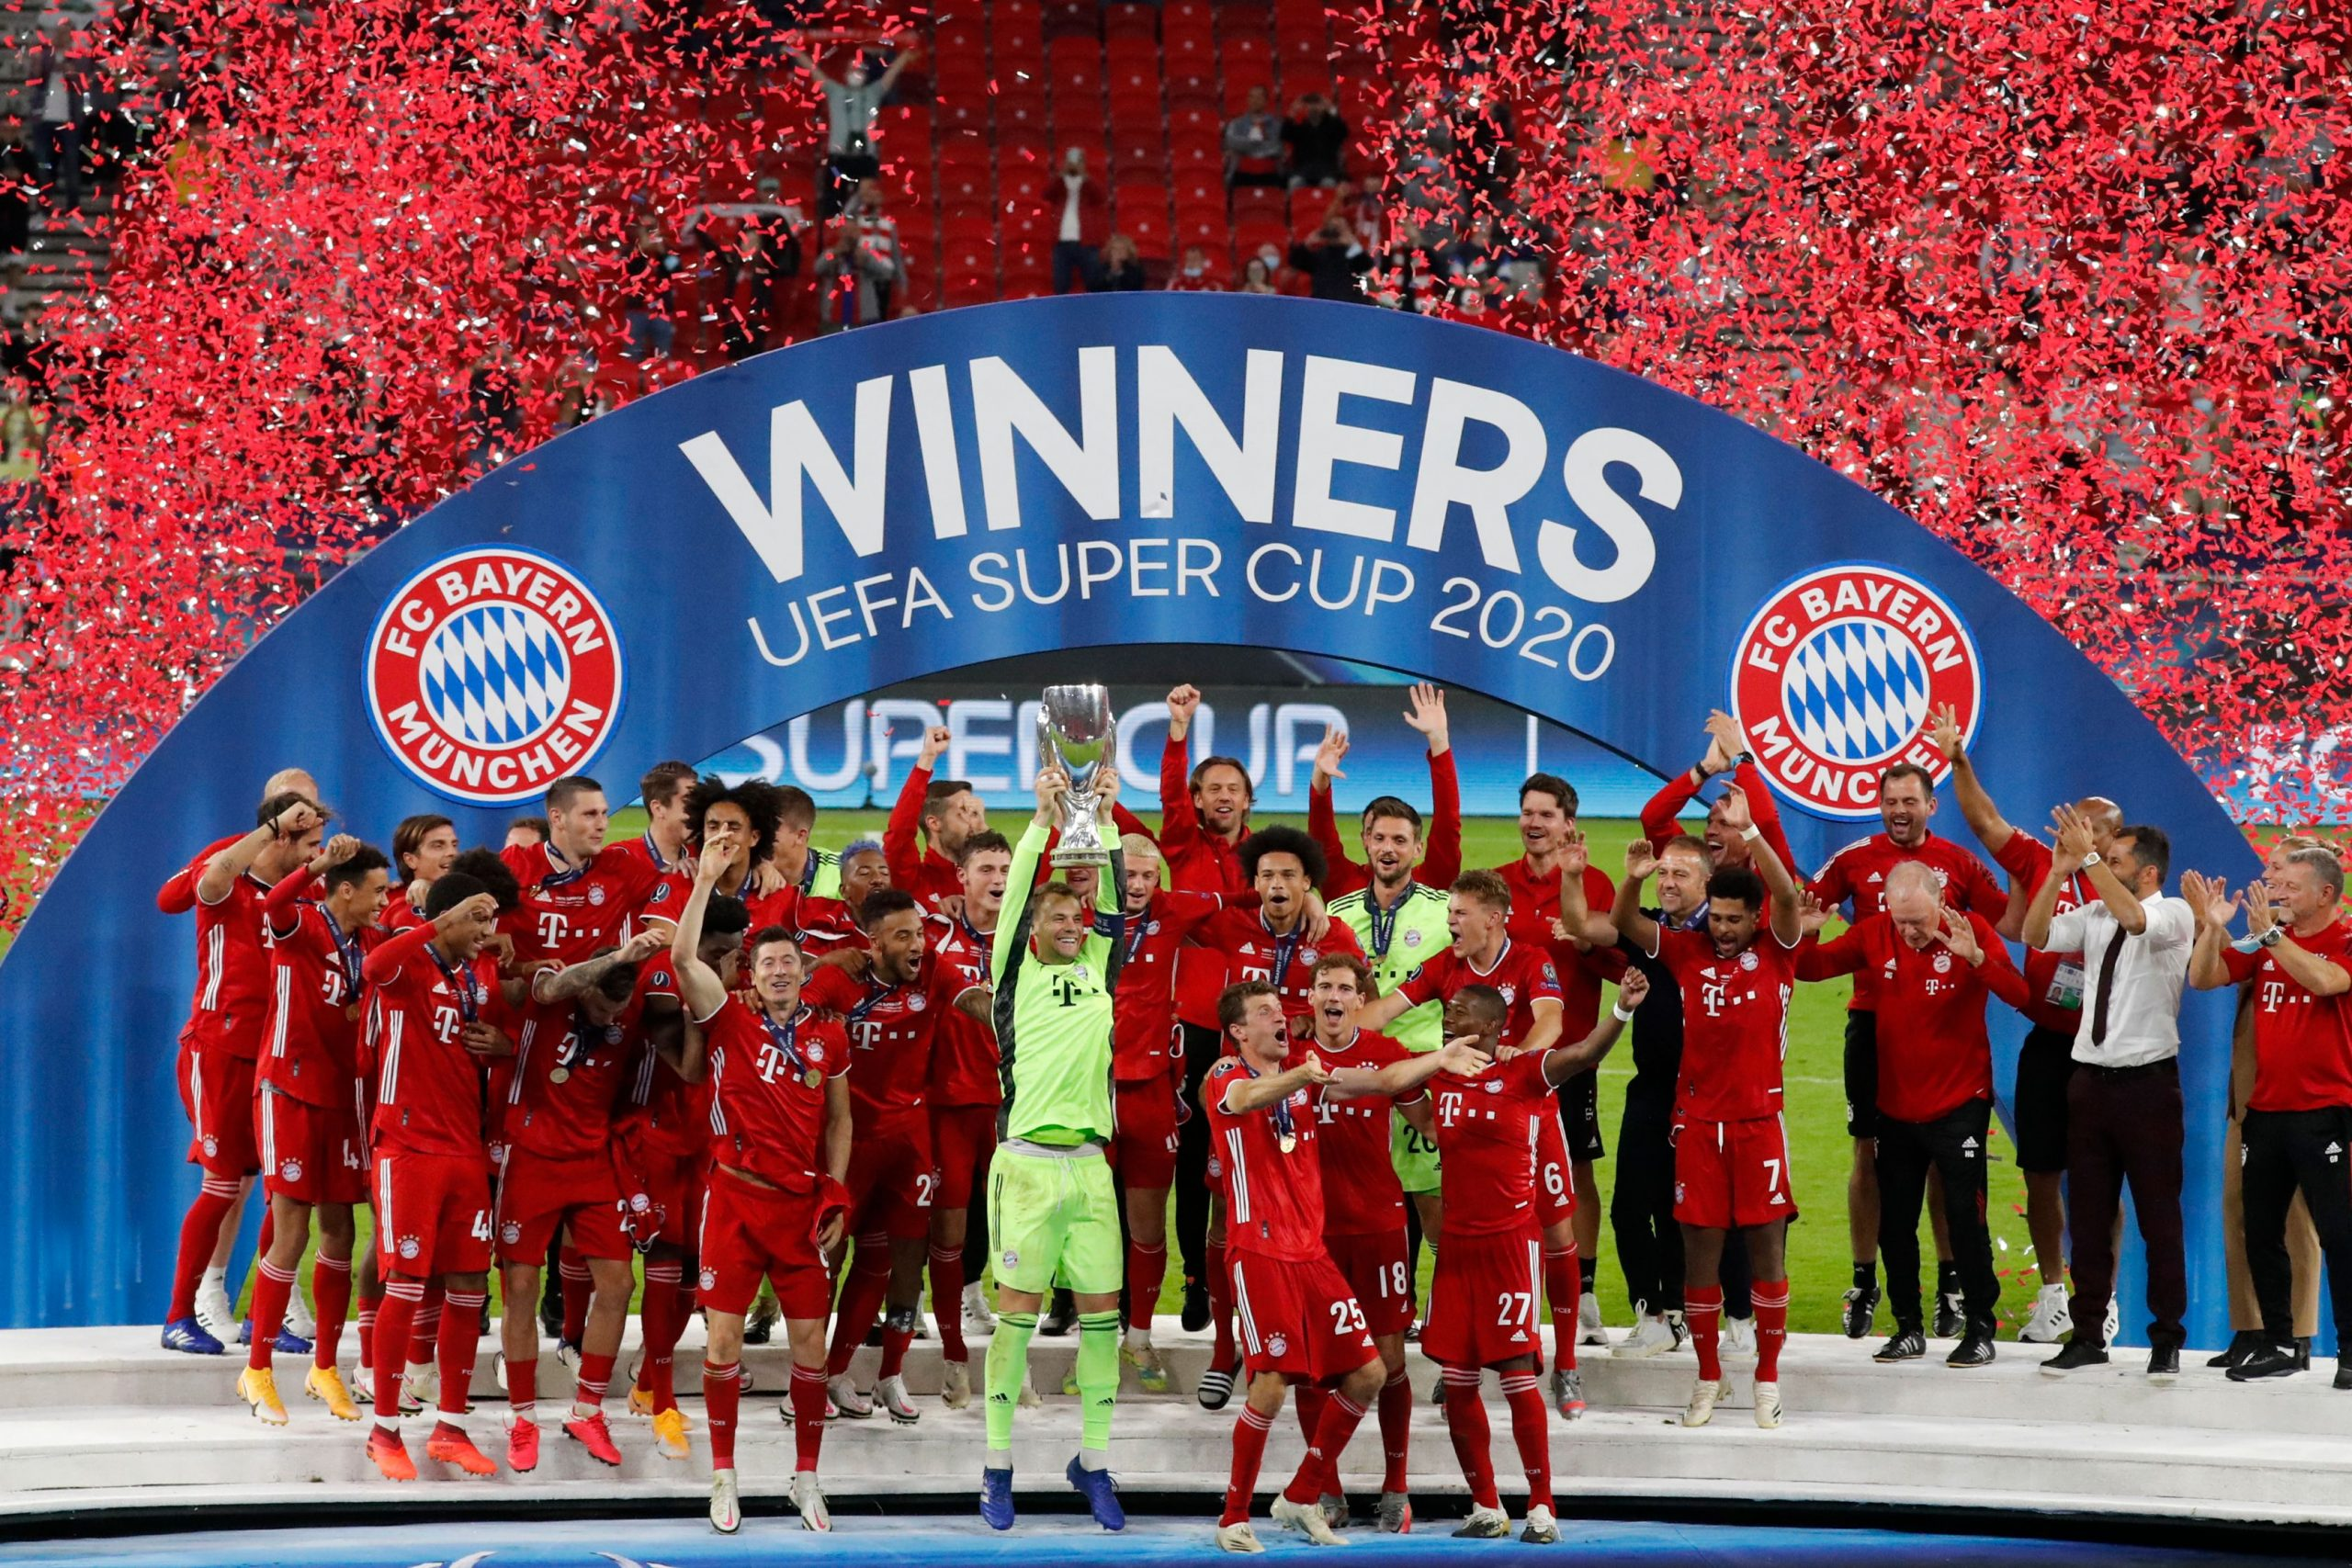 Bayern beat Sevilla to win Super Cup (video)